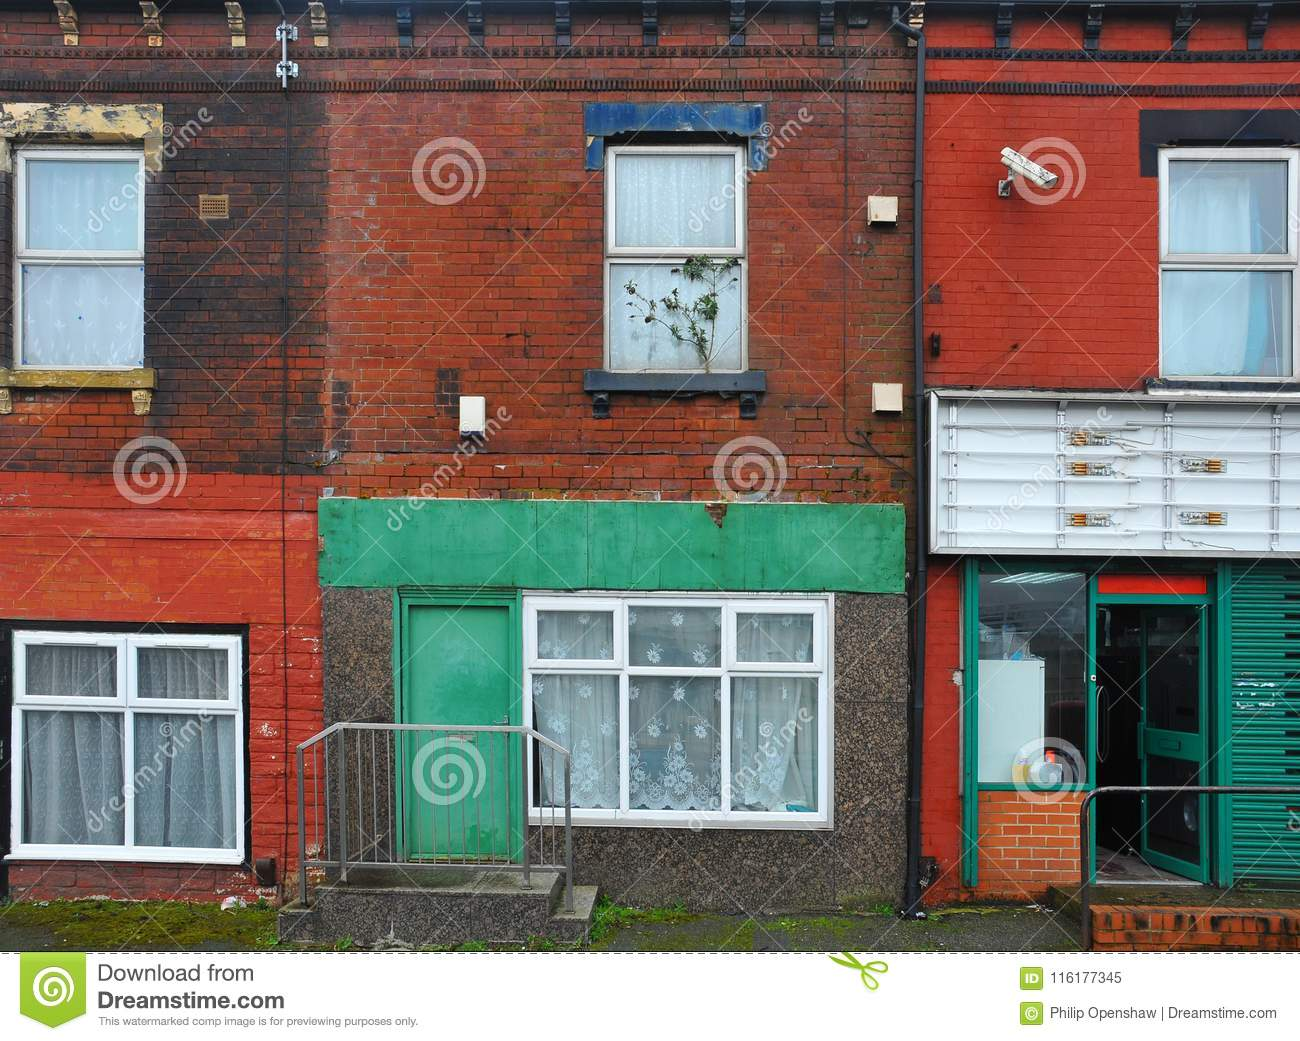 Run down terraced houses on a street in leeds with shabby decaying colourful painted walls and a shop front with an open door